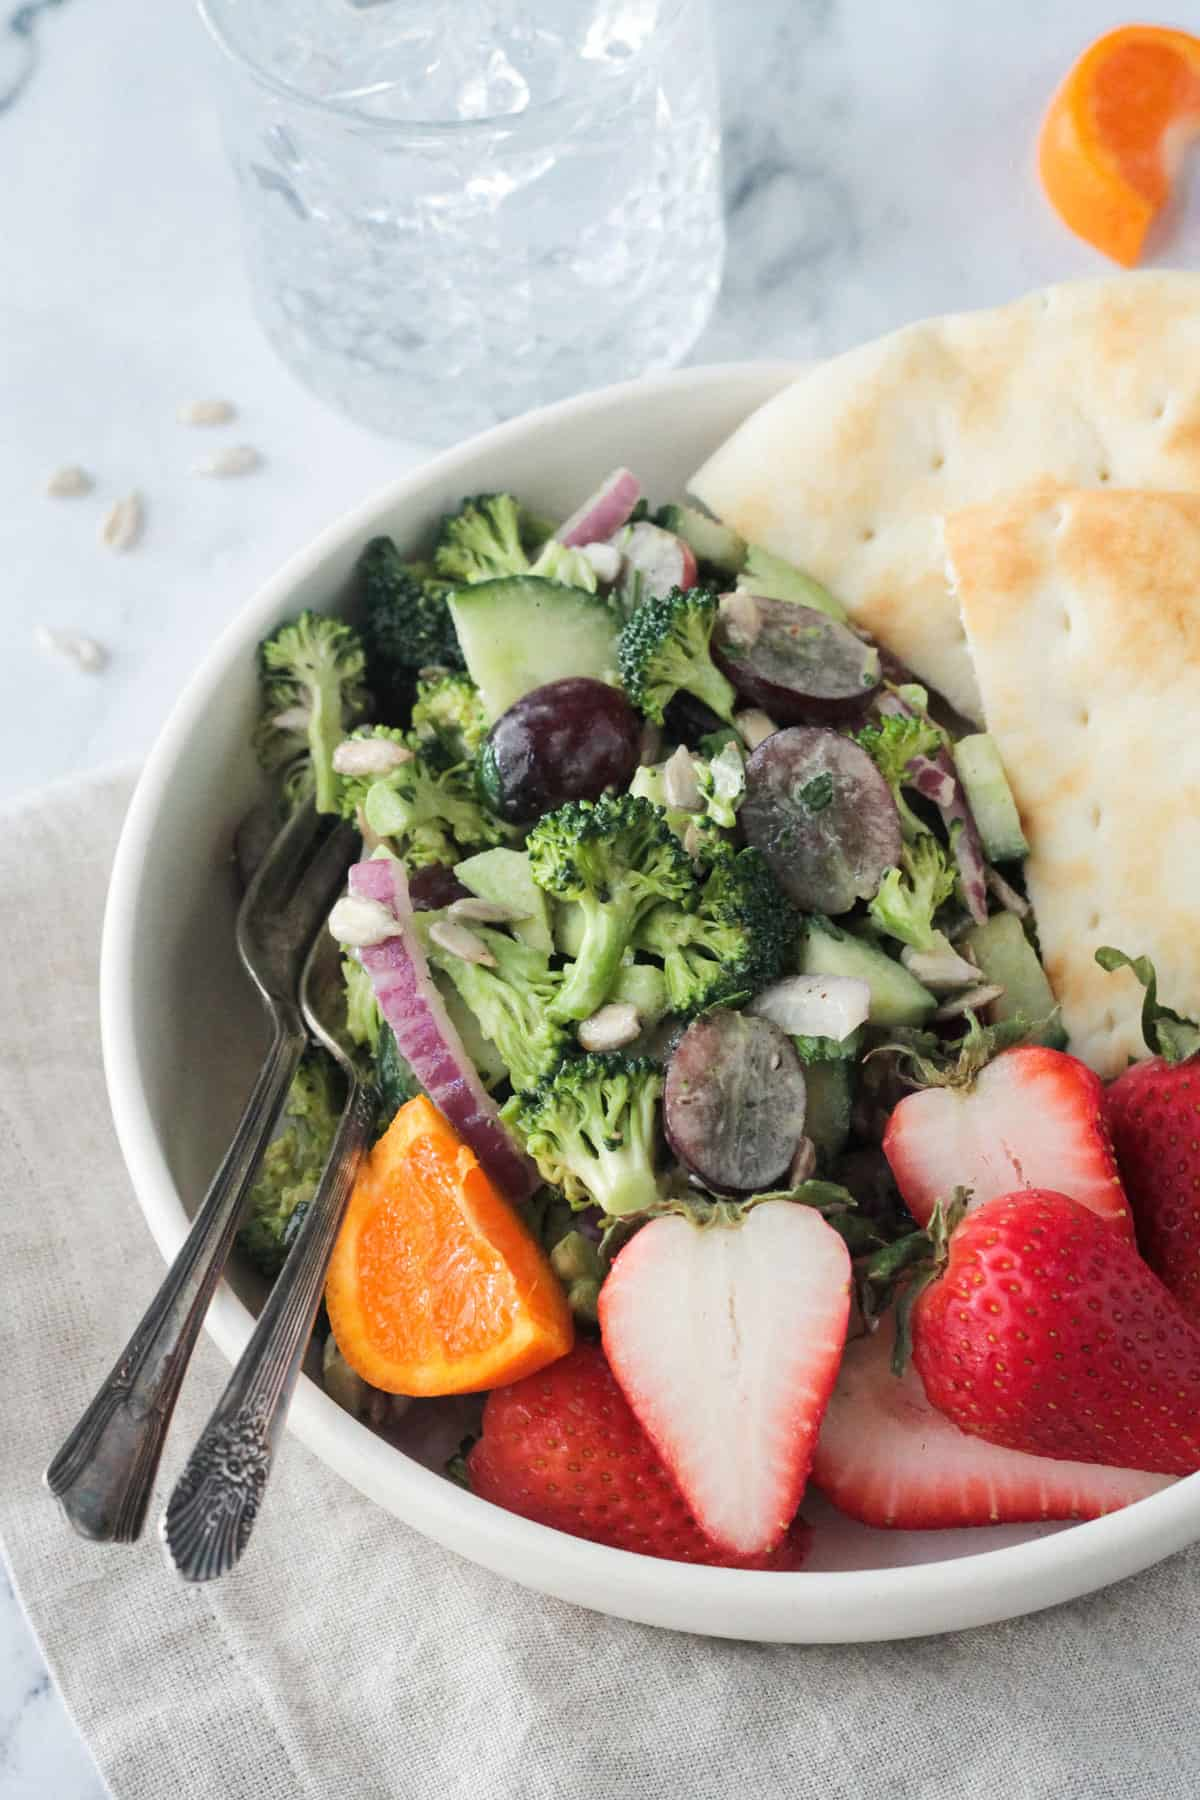 Two forks in a bowl of broccoli salad with grapes and red onion.